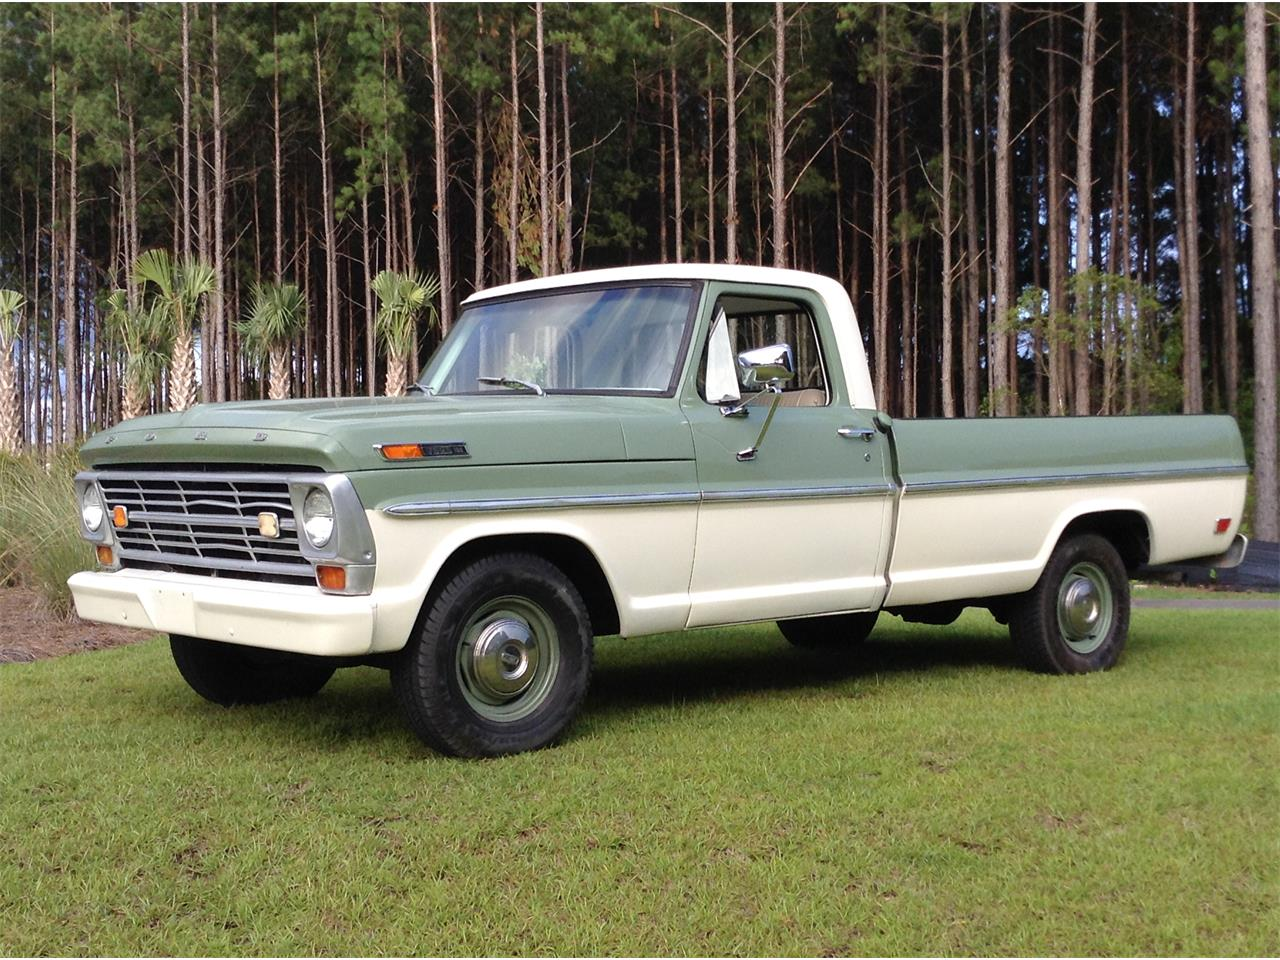 Large picture of 68 f100 ivb9